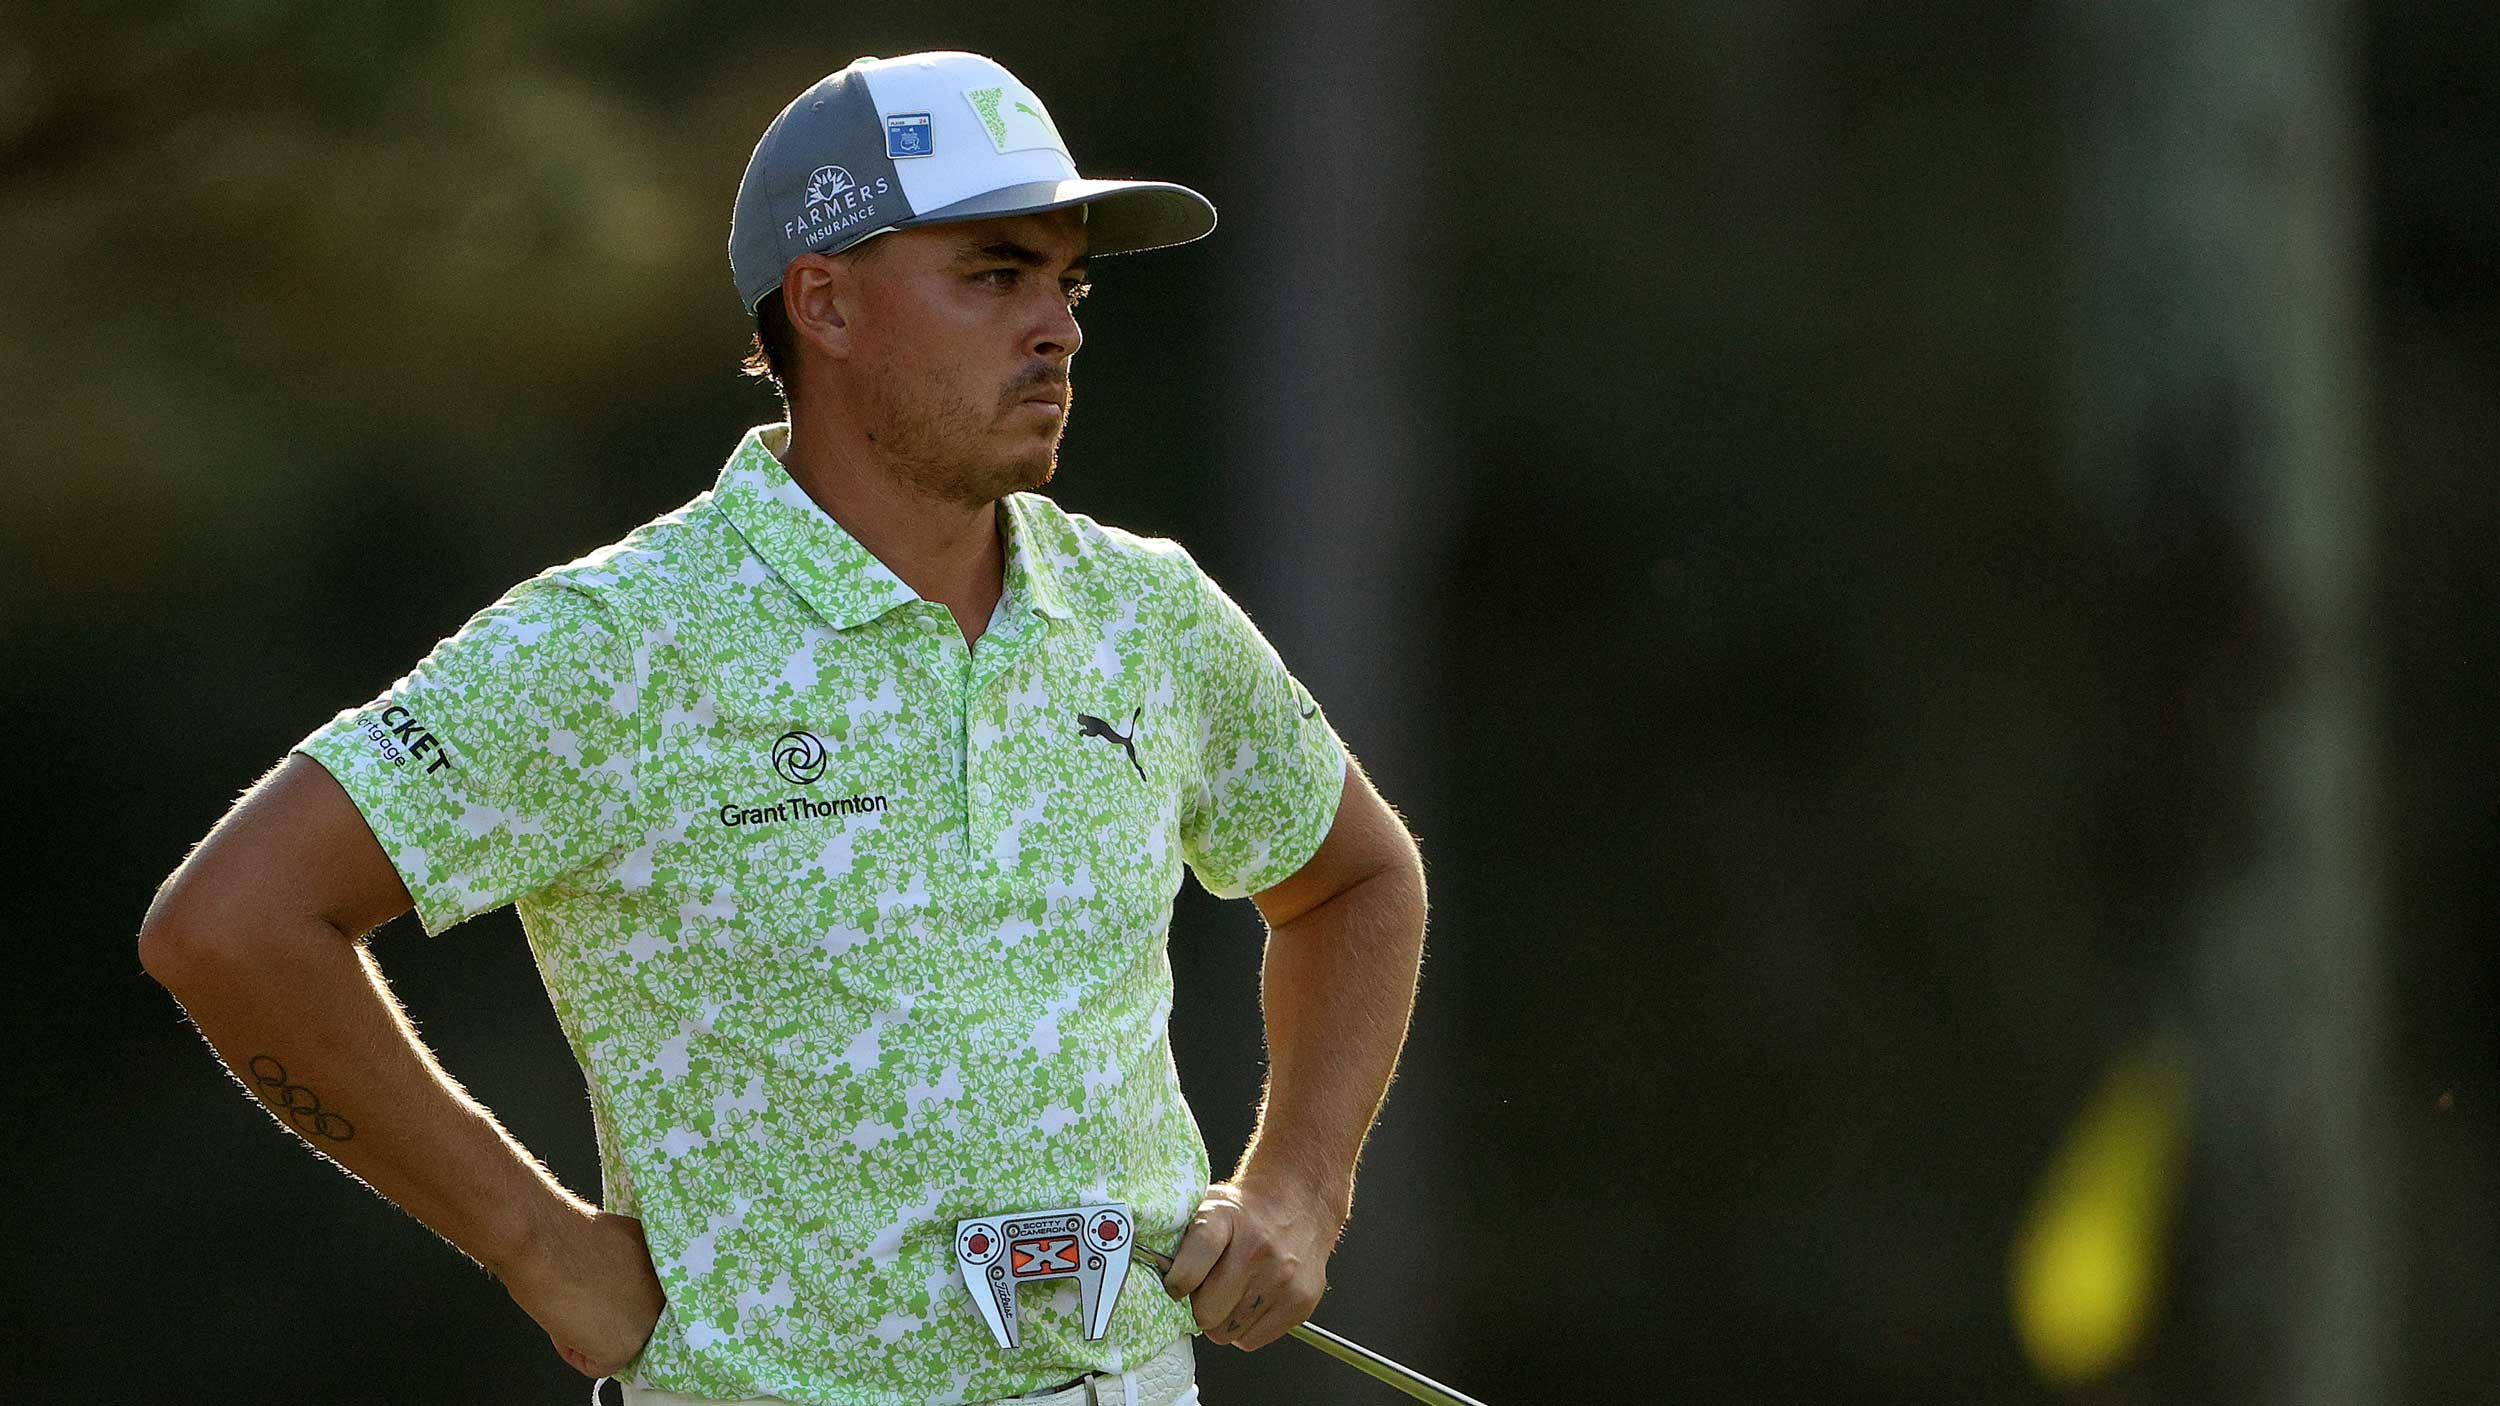 Rickie Fowler Flopped At Shriners -- Gets Another Chance At CJ Cup